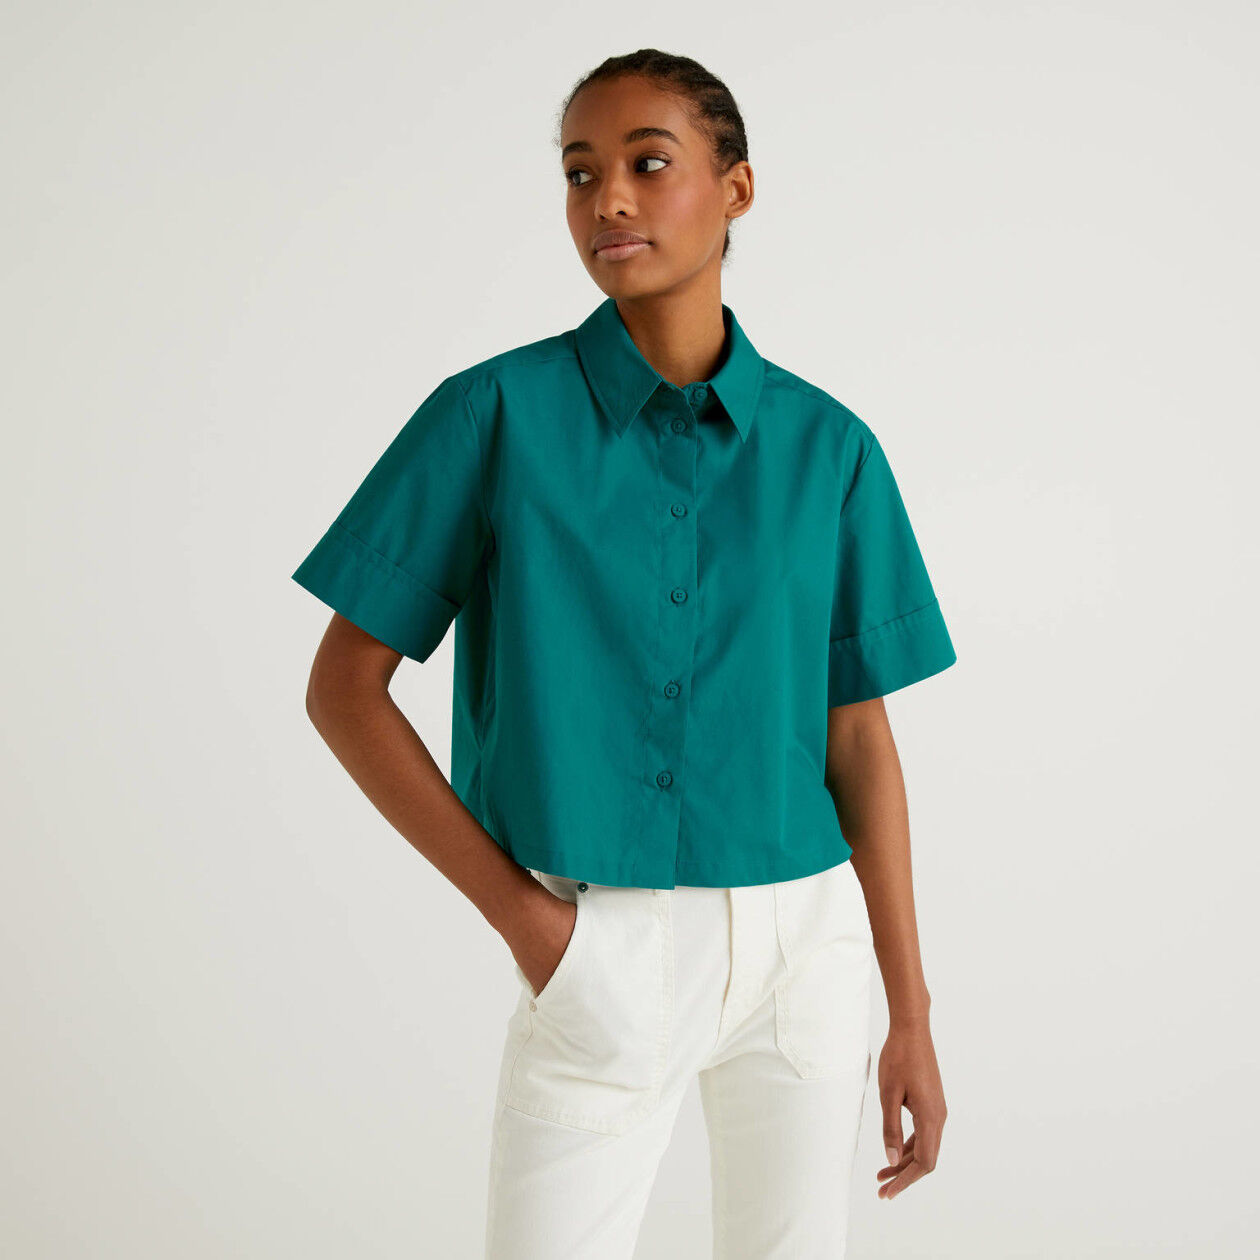 Boxy shirt in 100% cotton